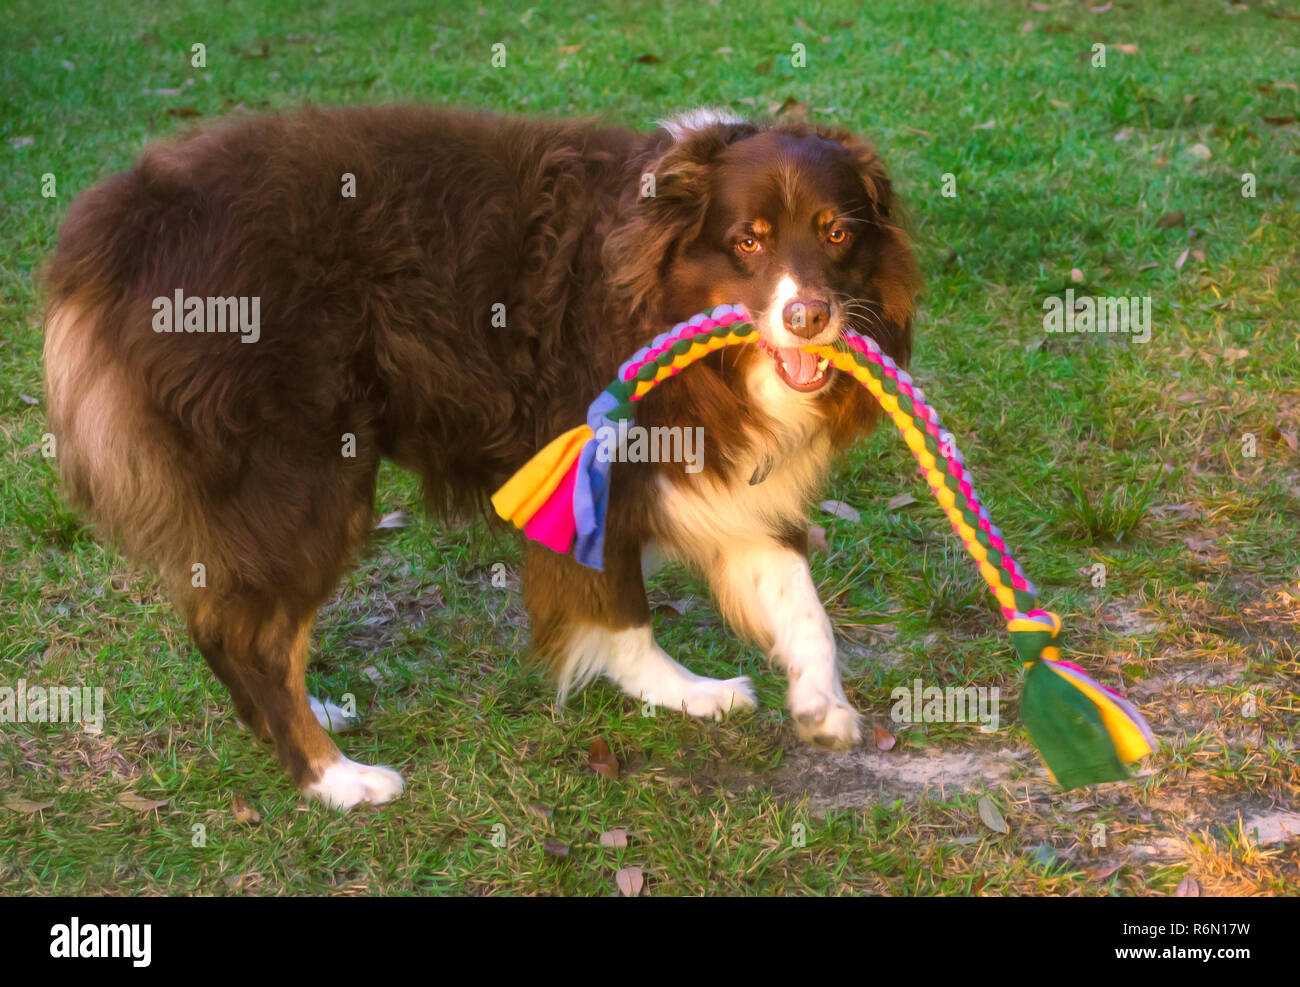 Cowboy, a red tri Australian Shepherd, plays with a braided tug toy, October 29, 2015, in Coden, Alabama. (Photo by Carmen K. Sisson/Cloudybright) - Stock Image